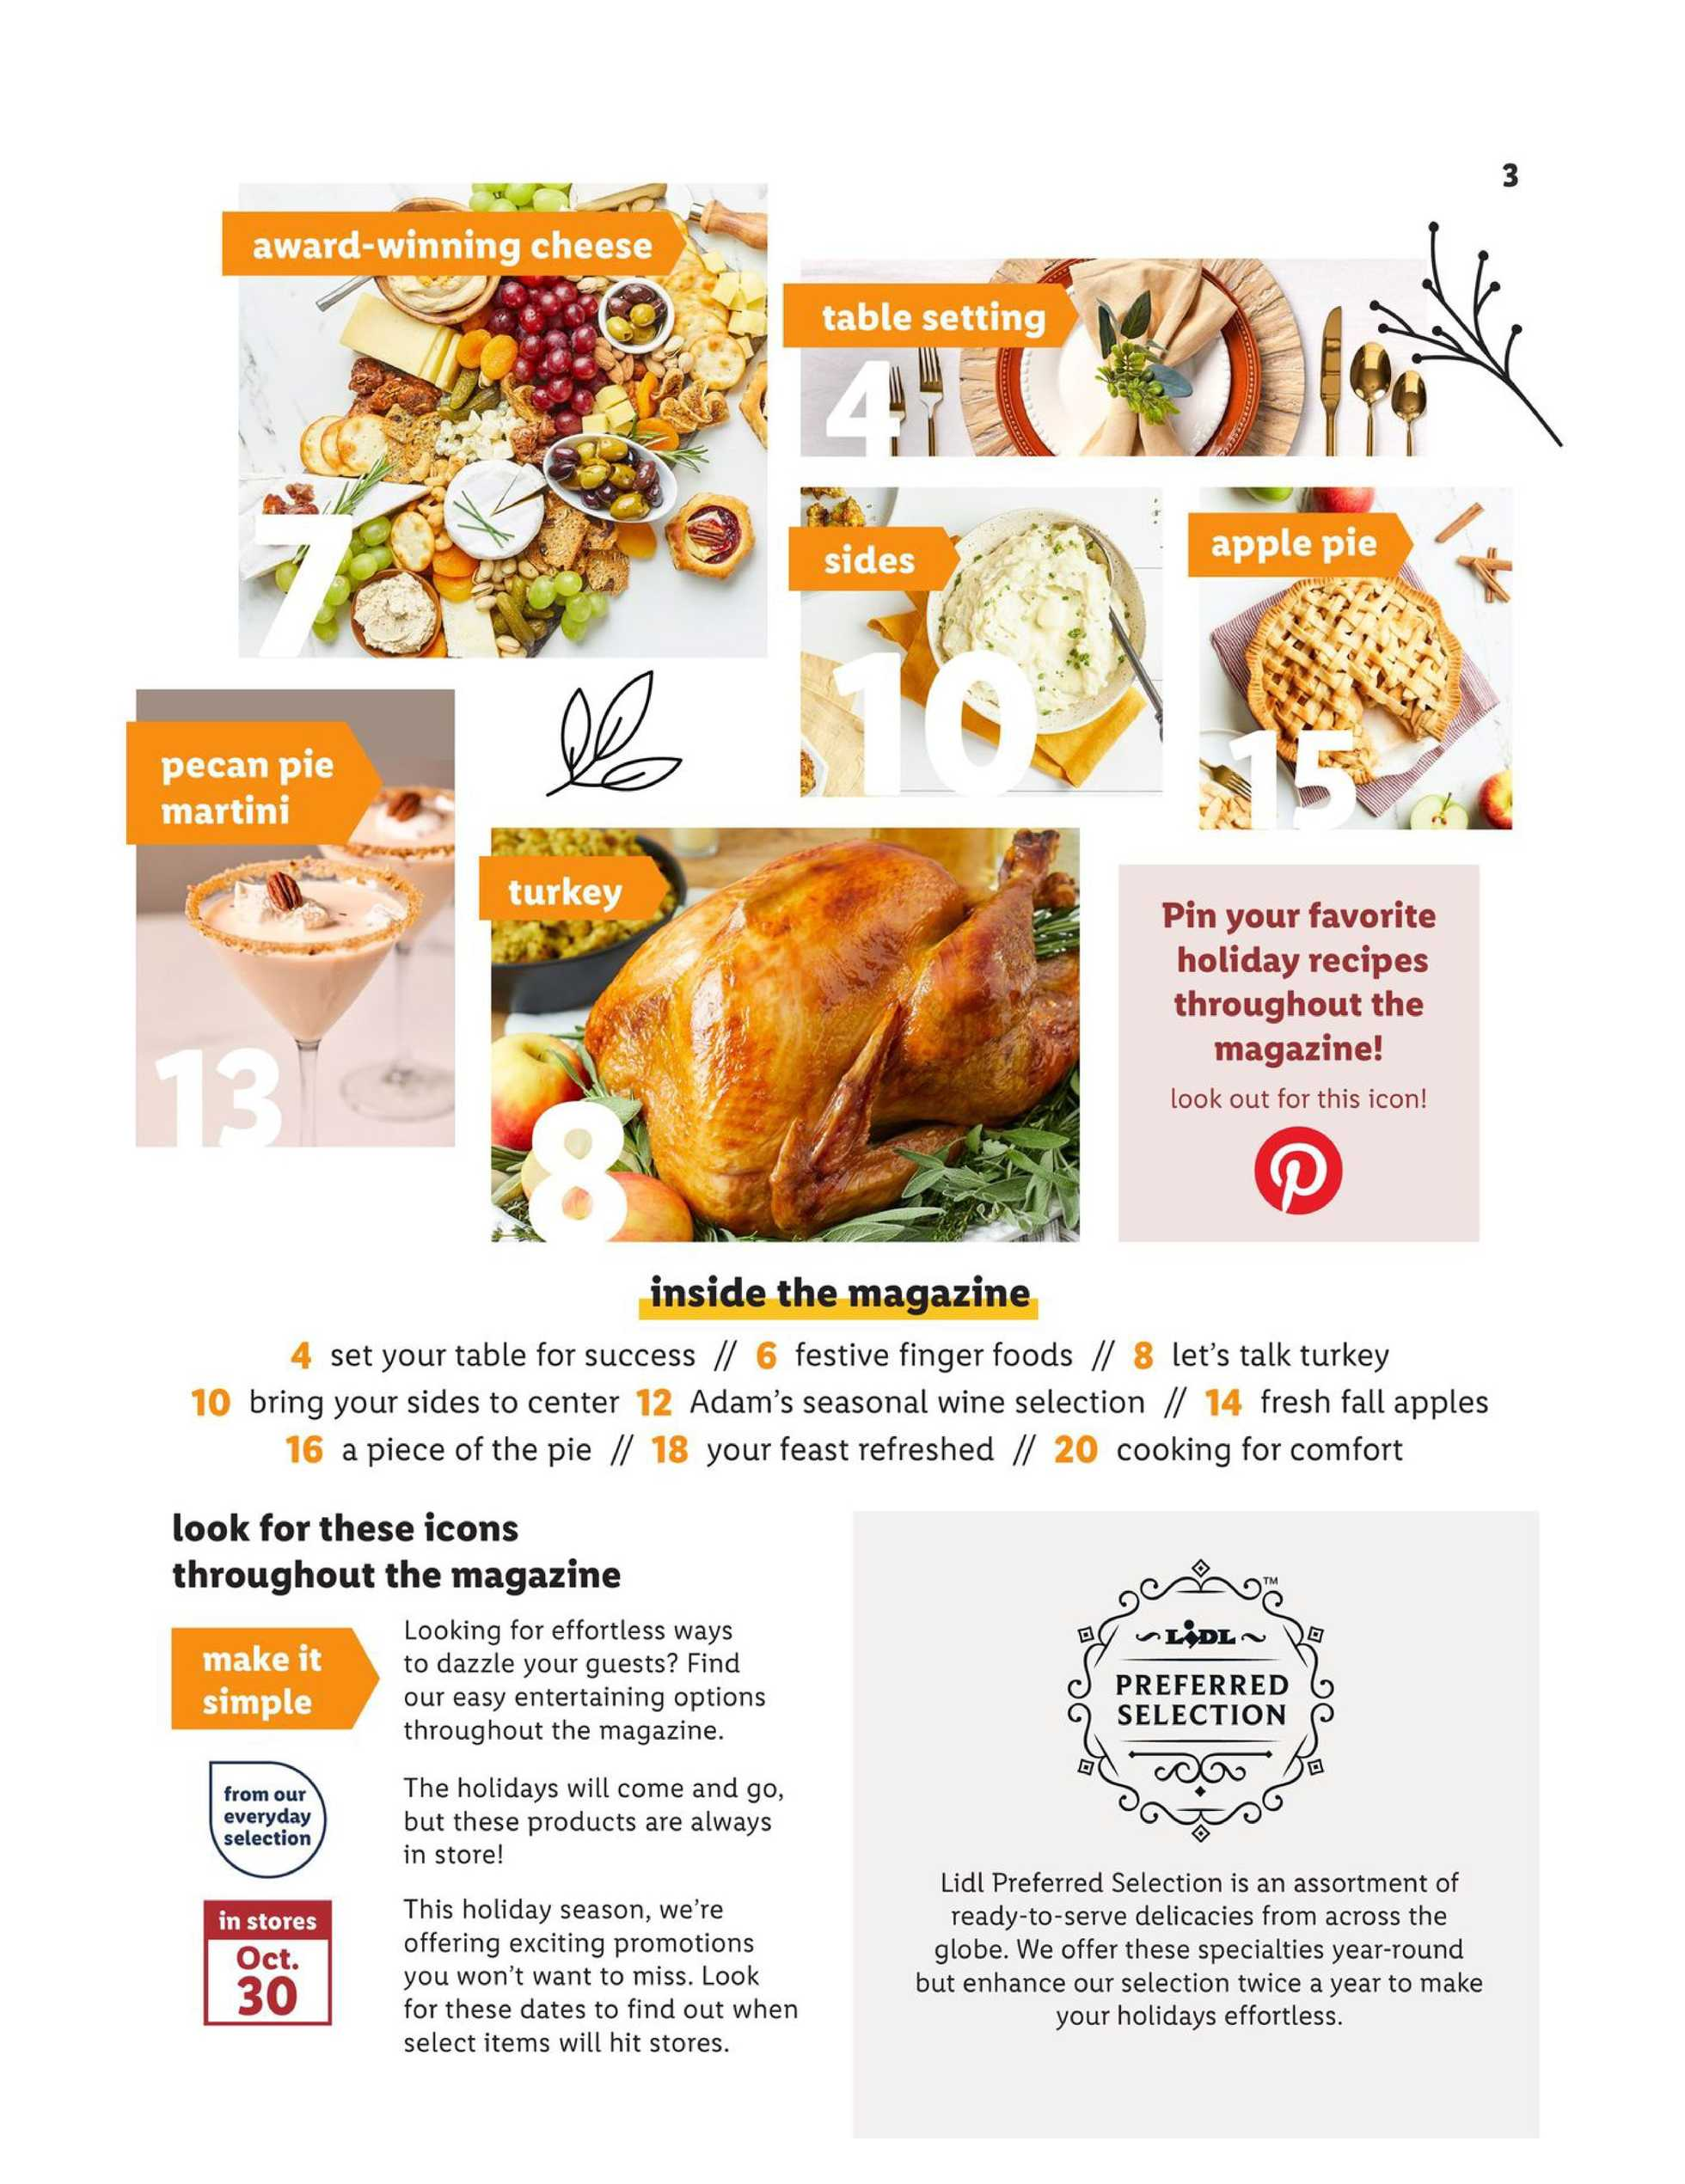 Lidl - promo starting from 10/30/19 to 12/31/19 - page 3.